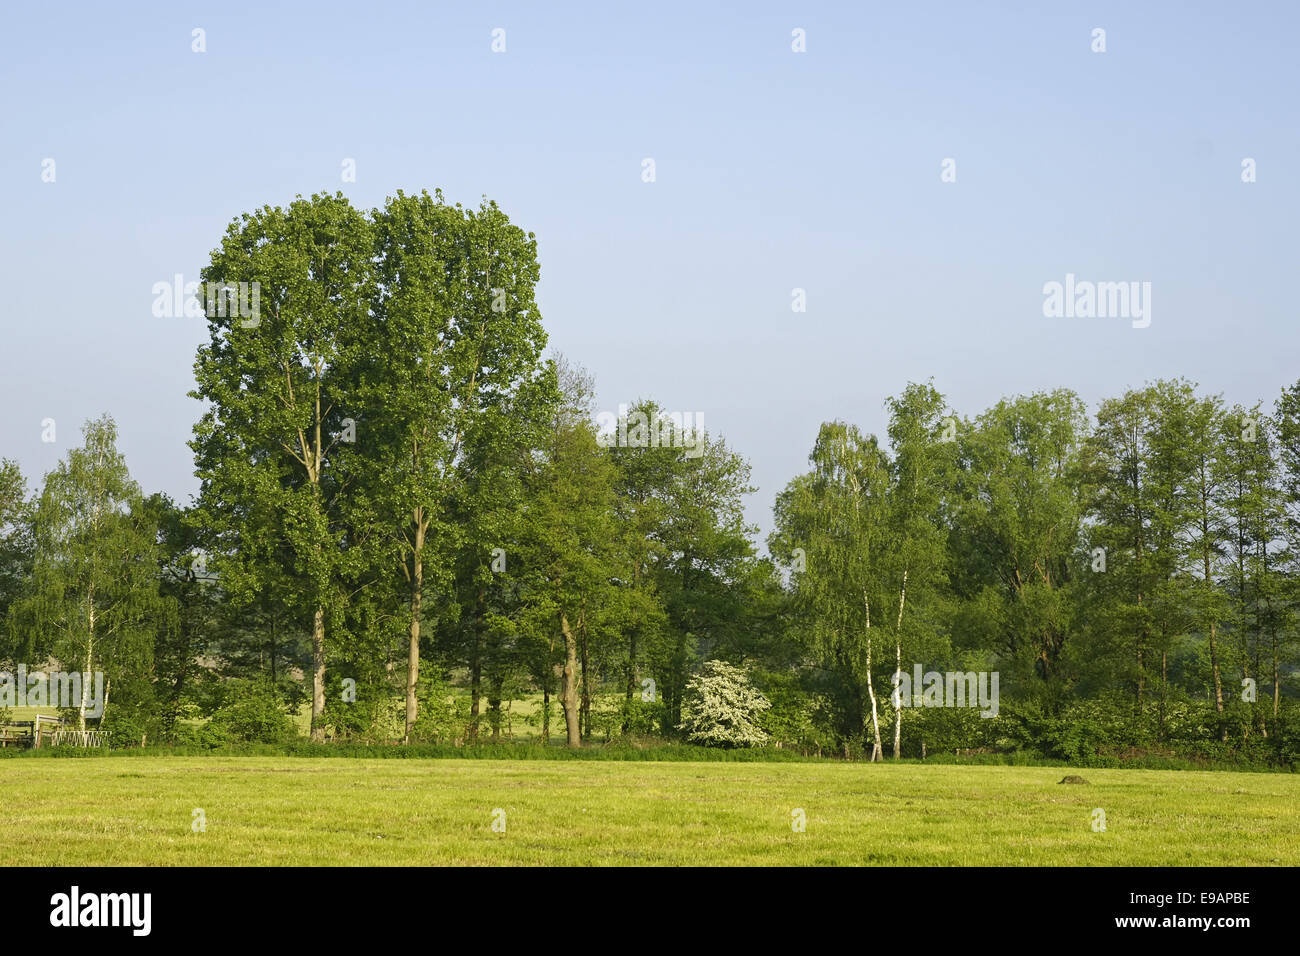 Summerly landscape with broadleaf tree - Stock Image